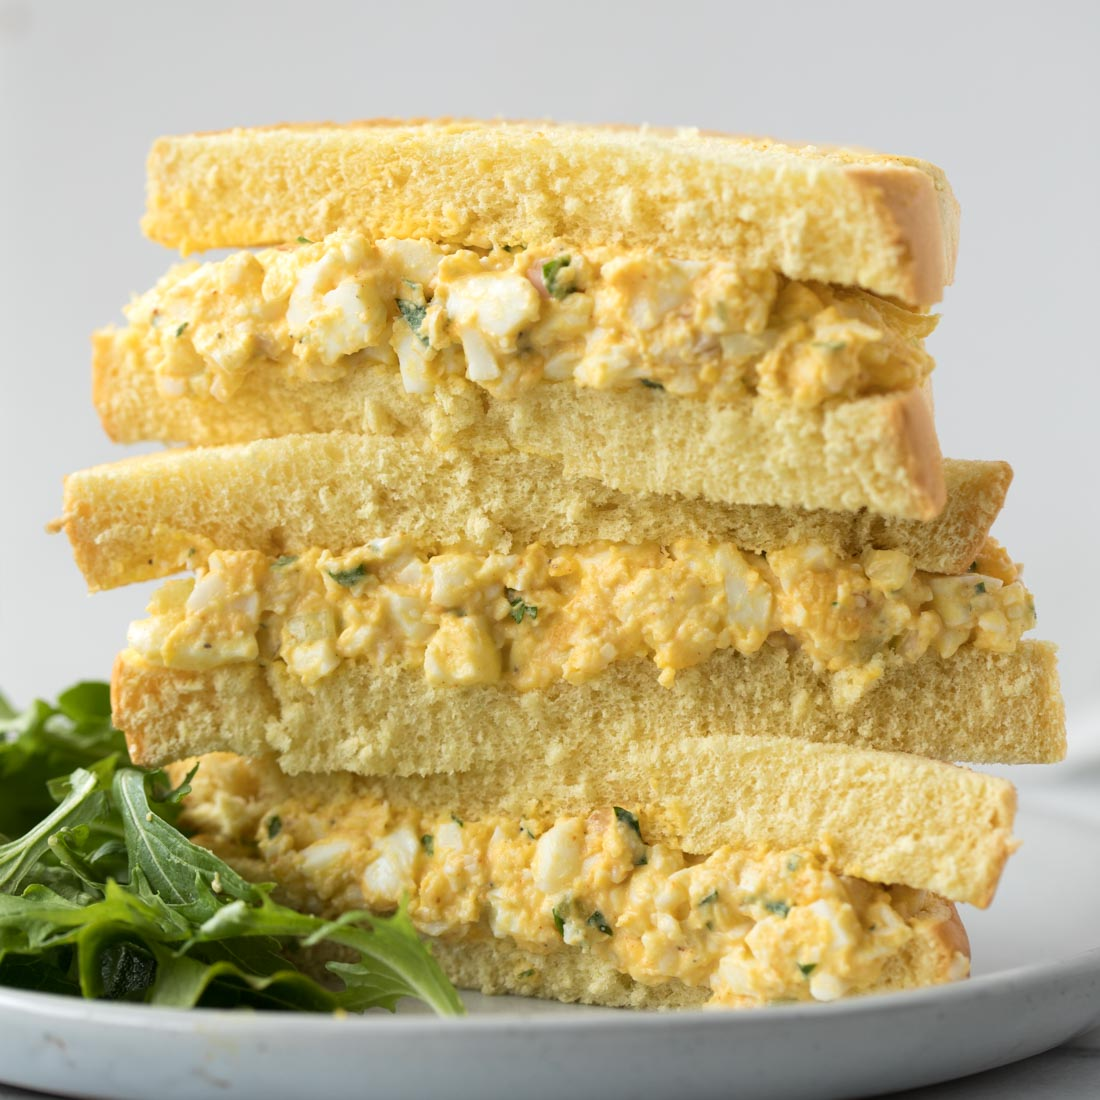 Egg salad on sandwiches stacked